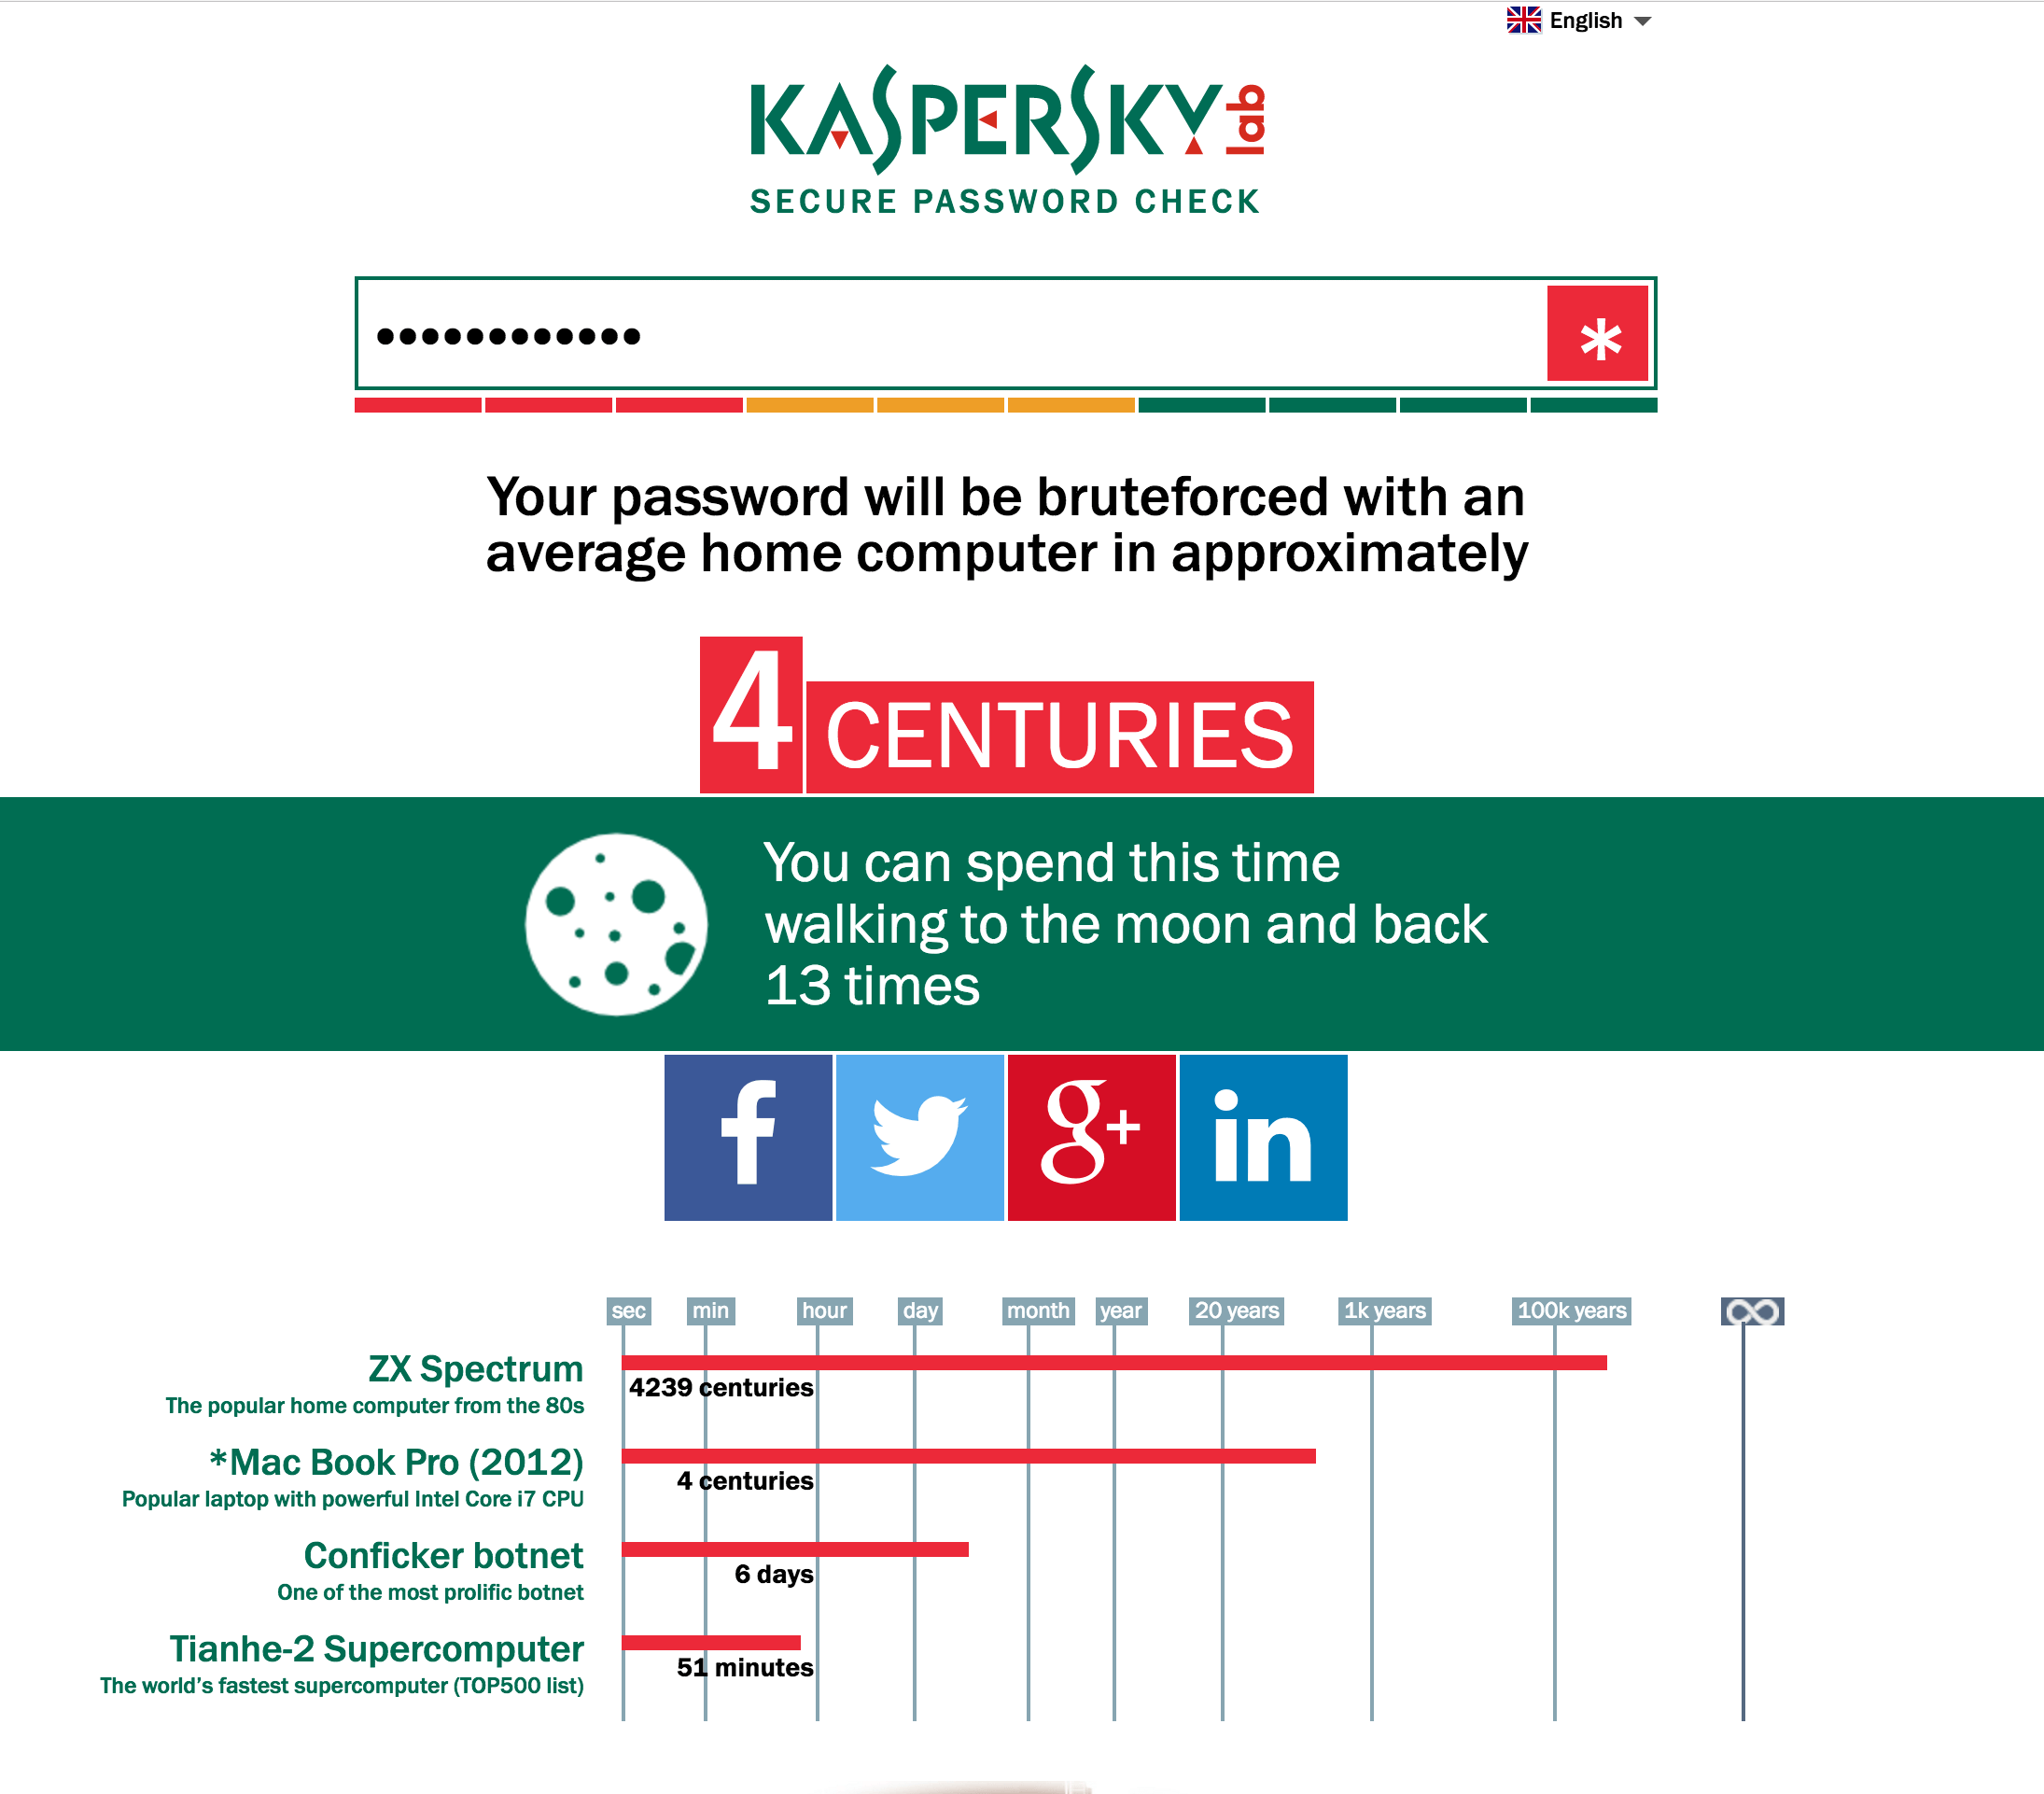 Kaspersky Secure Password Check